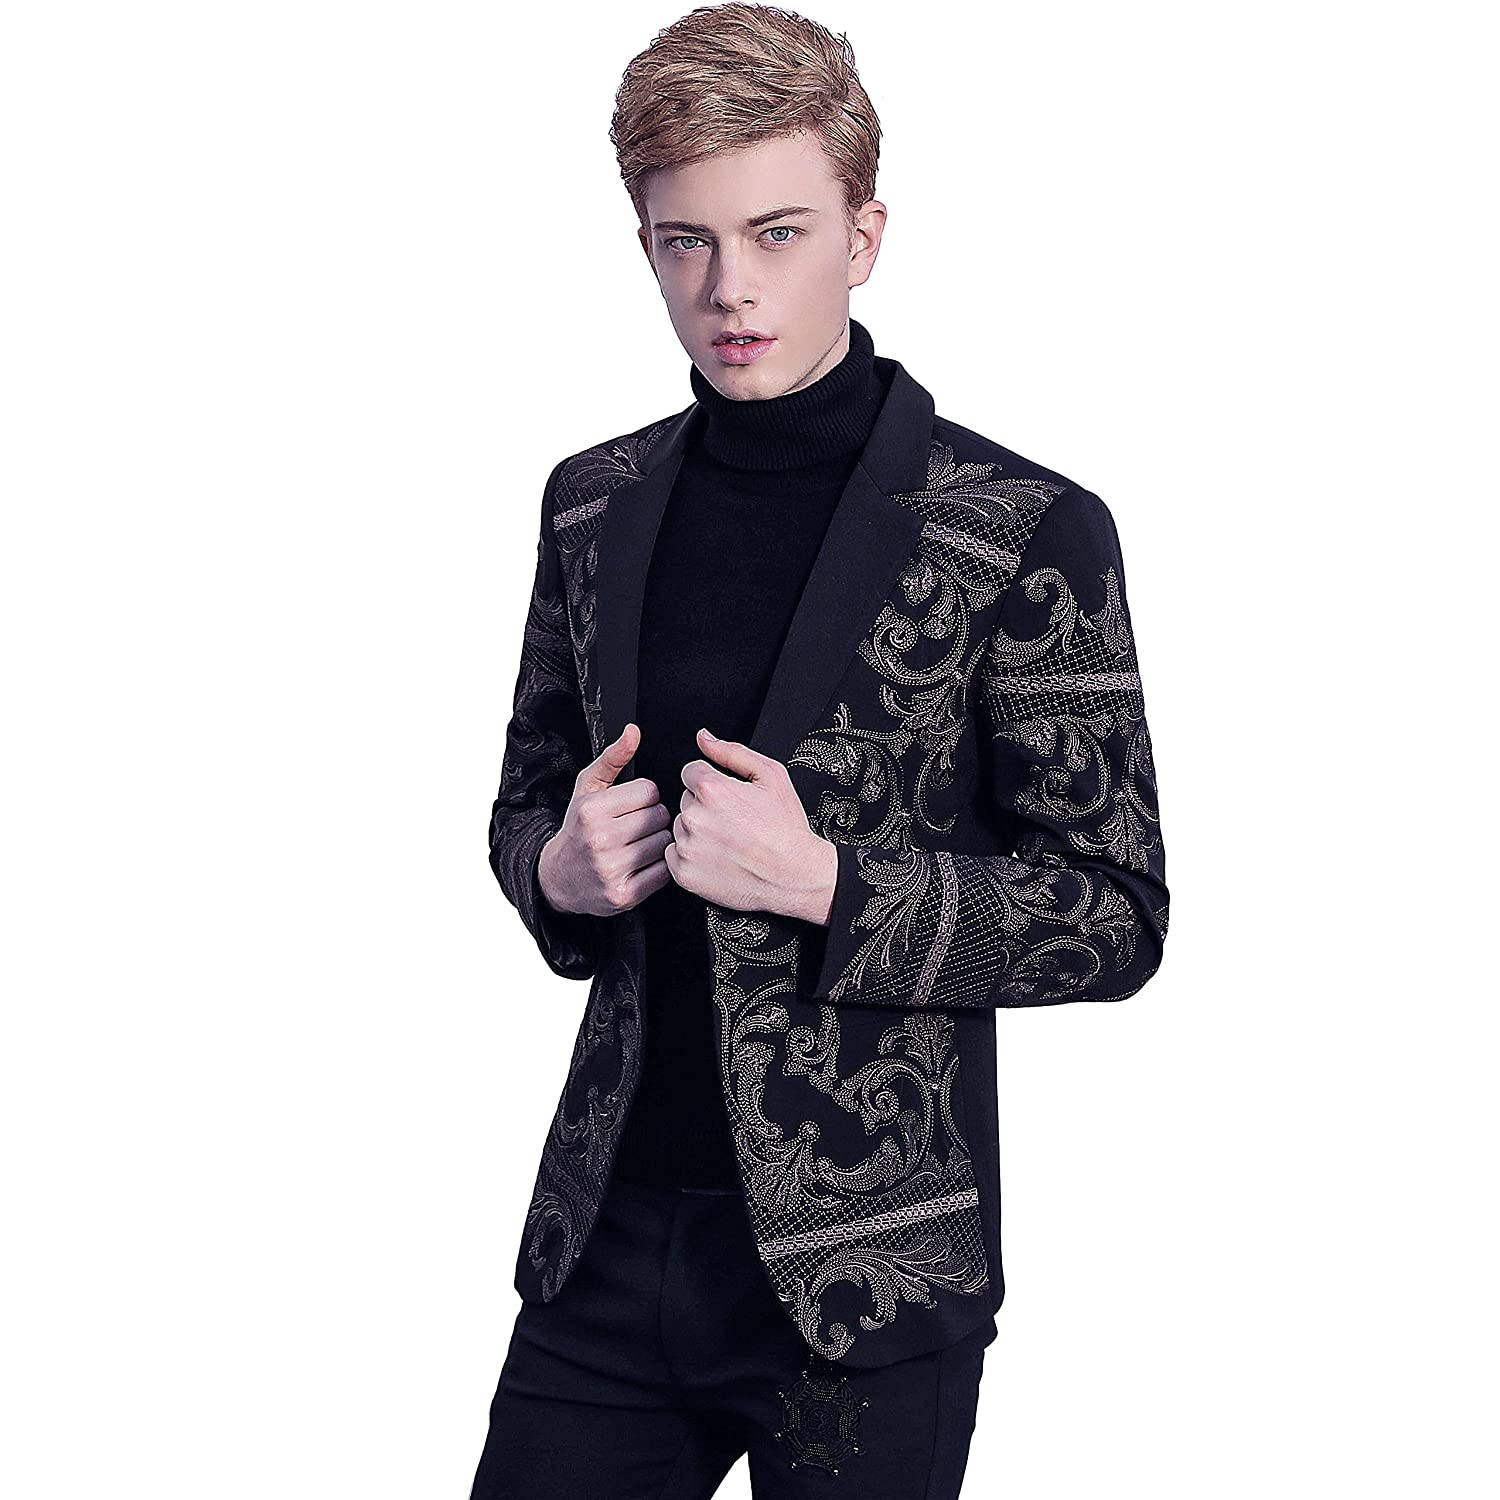 8e0ef63c FANZHUAN Mens Black Fashion Embroidery Blazer Slim Fit: Amazon.co.uk:  Clothing